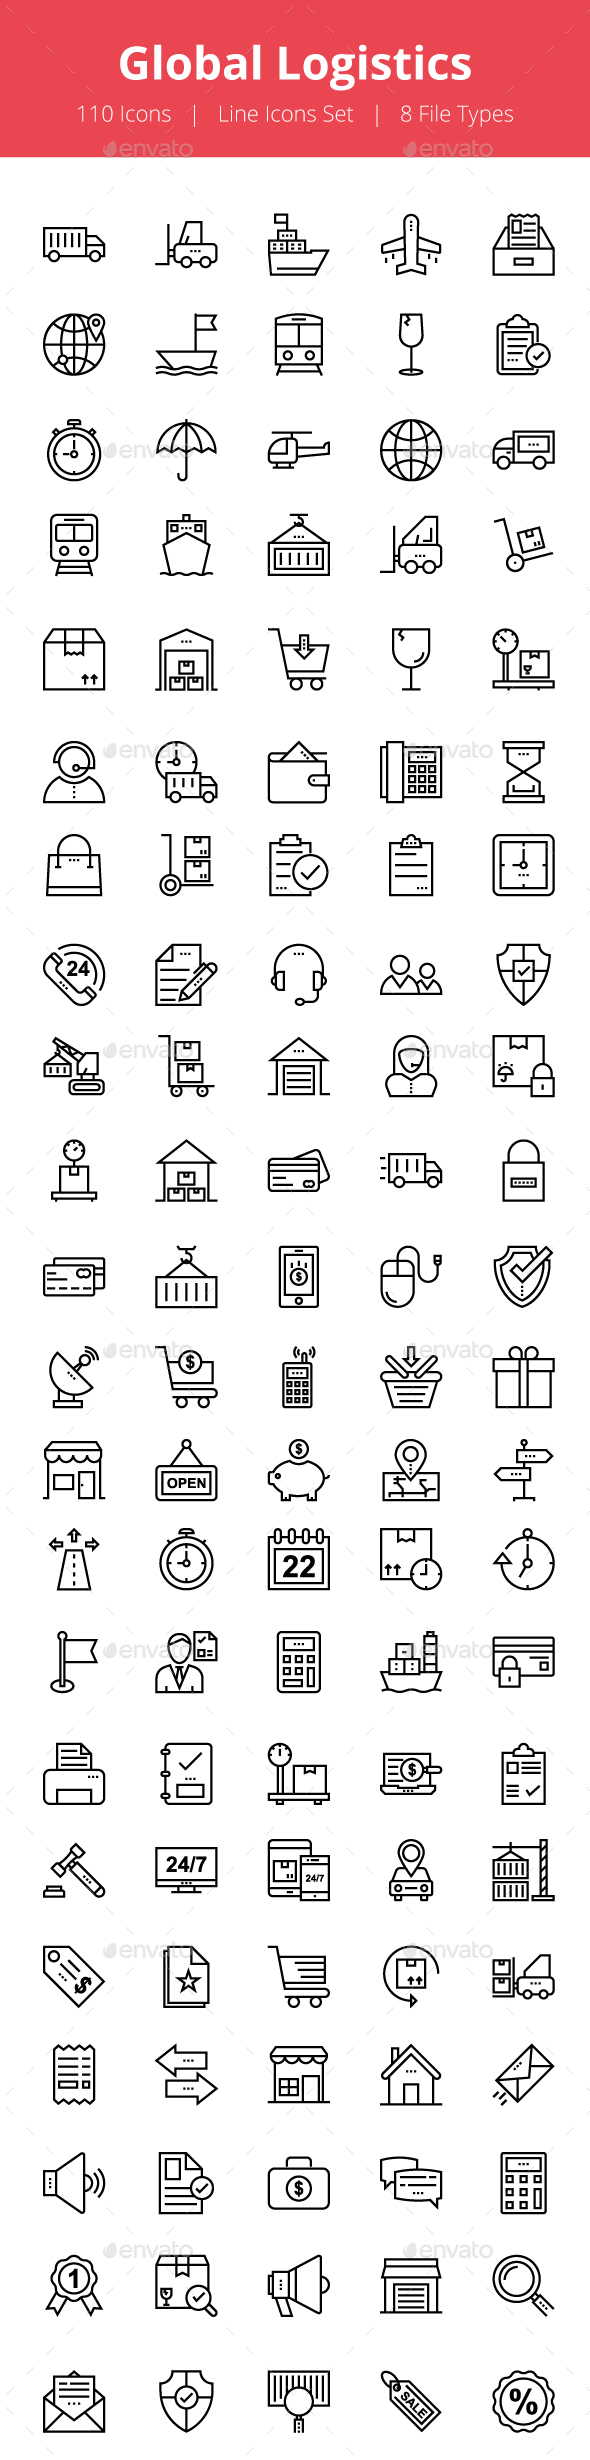 100+ Global Logistics Line Icons - Icons